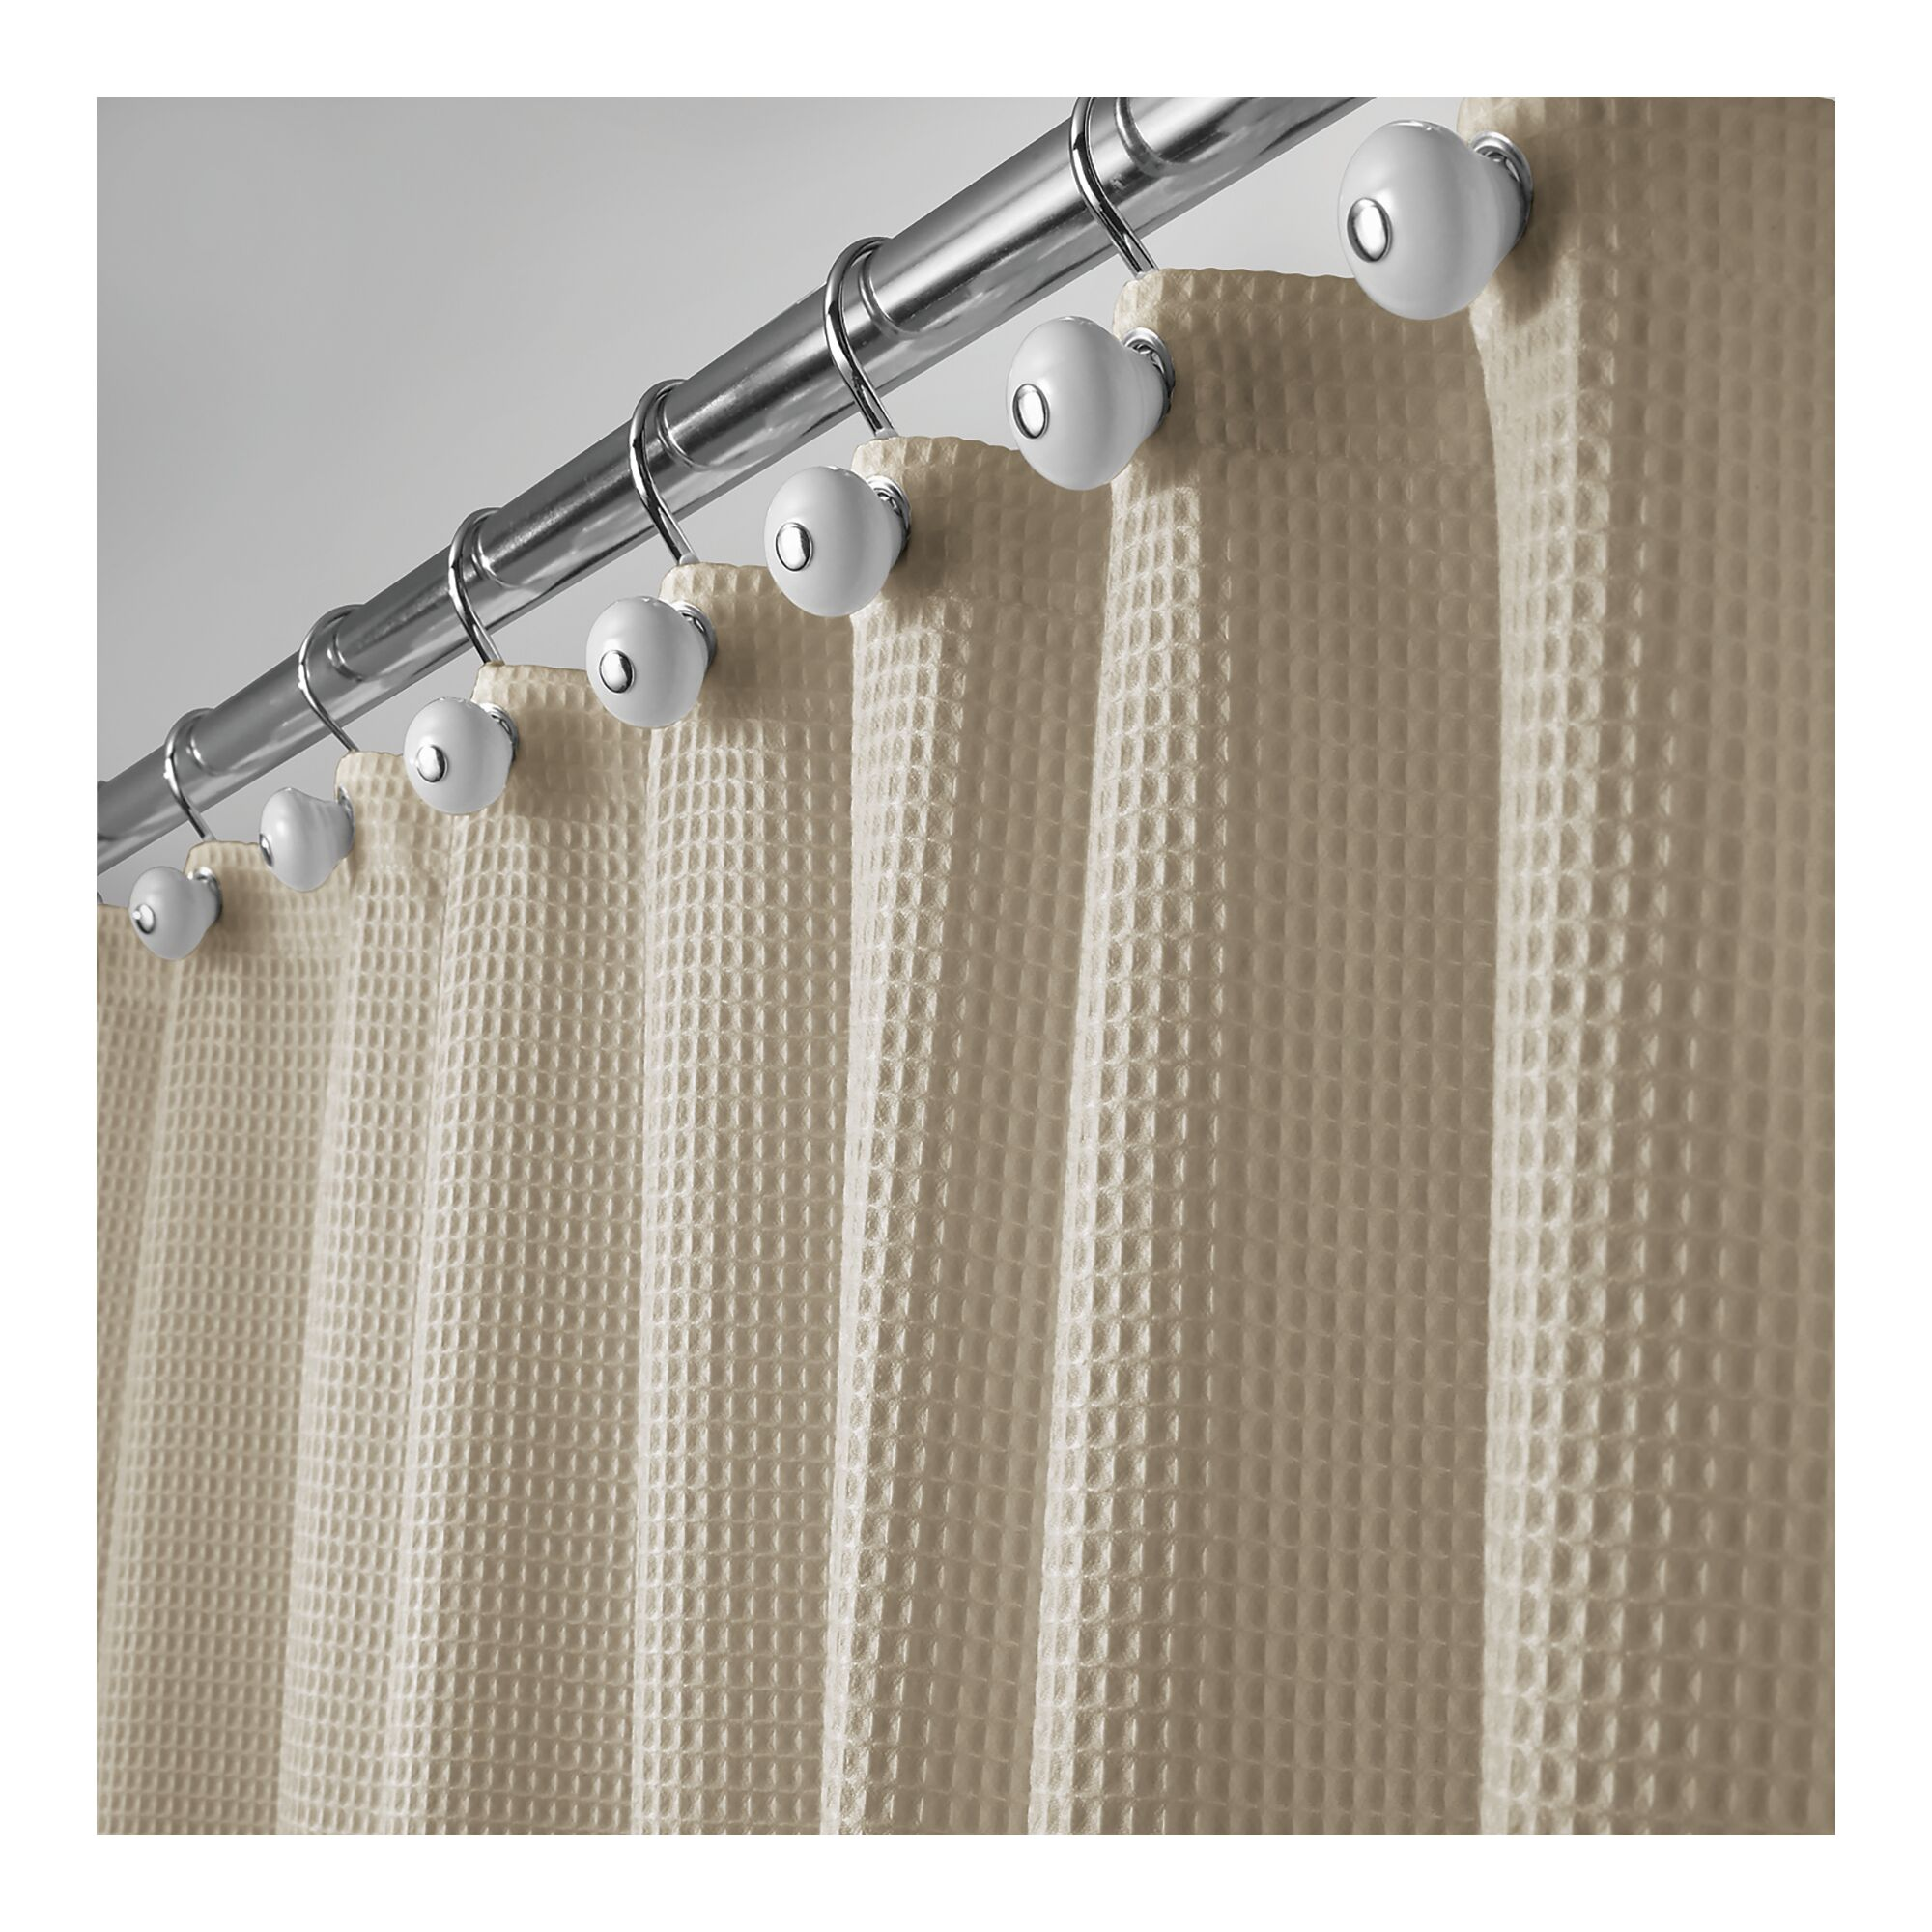 Details About Mdesign Extra Long Waffle Weave Fabric Shower Curtain 72 X 96